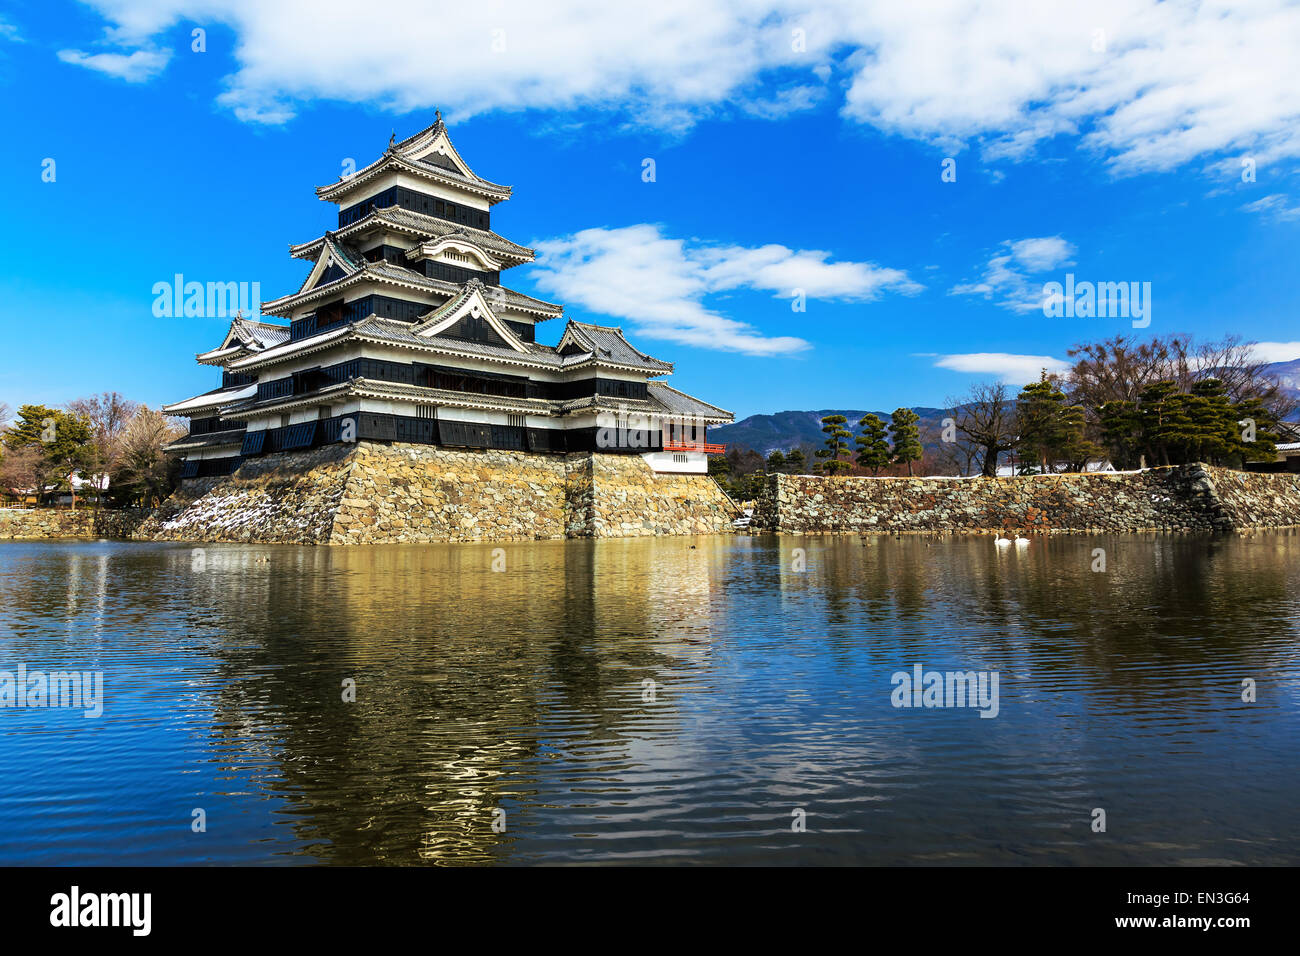 Medieval castle Matsumoto in the eastern Honshu, Japan - Stock Image